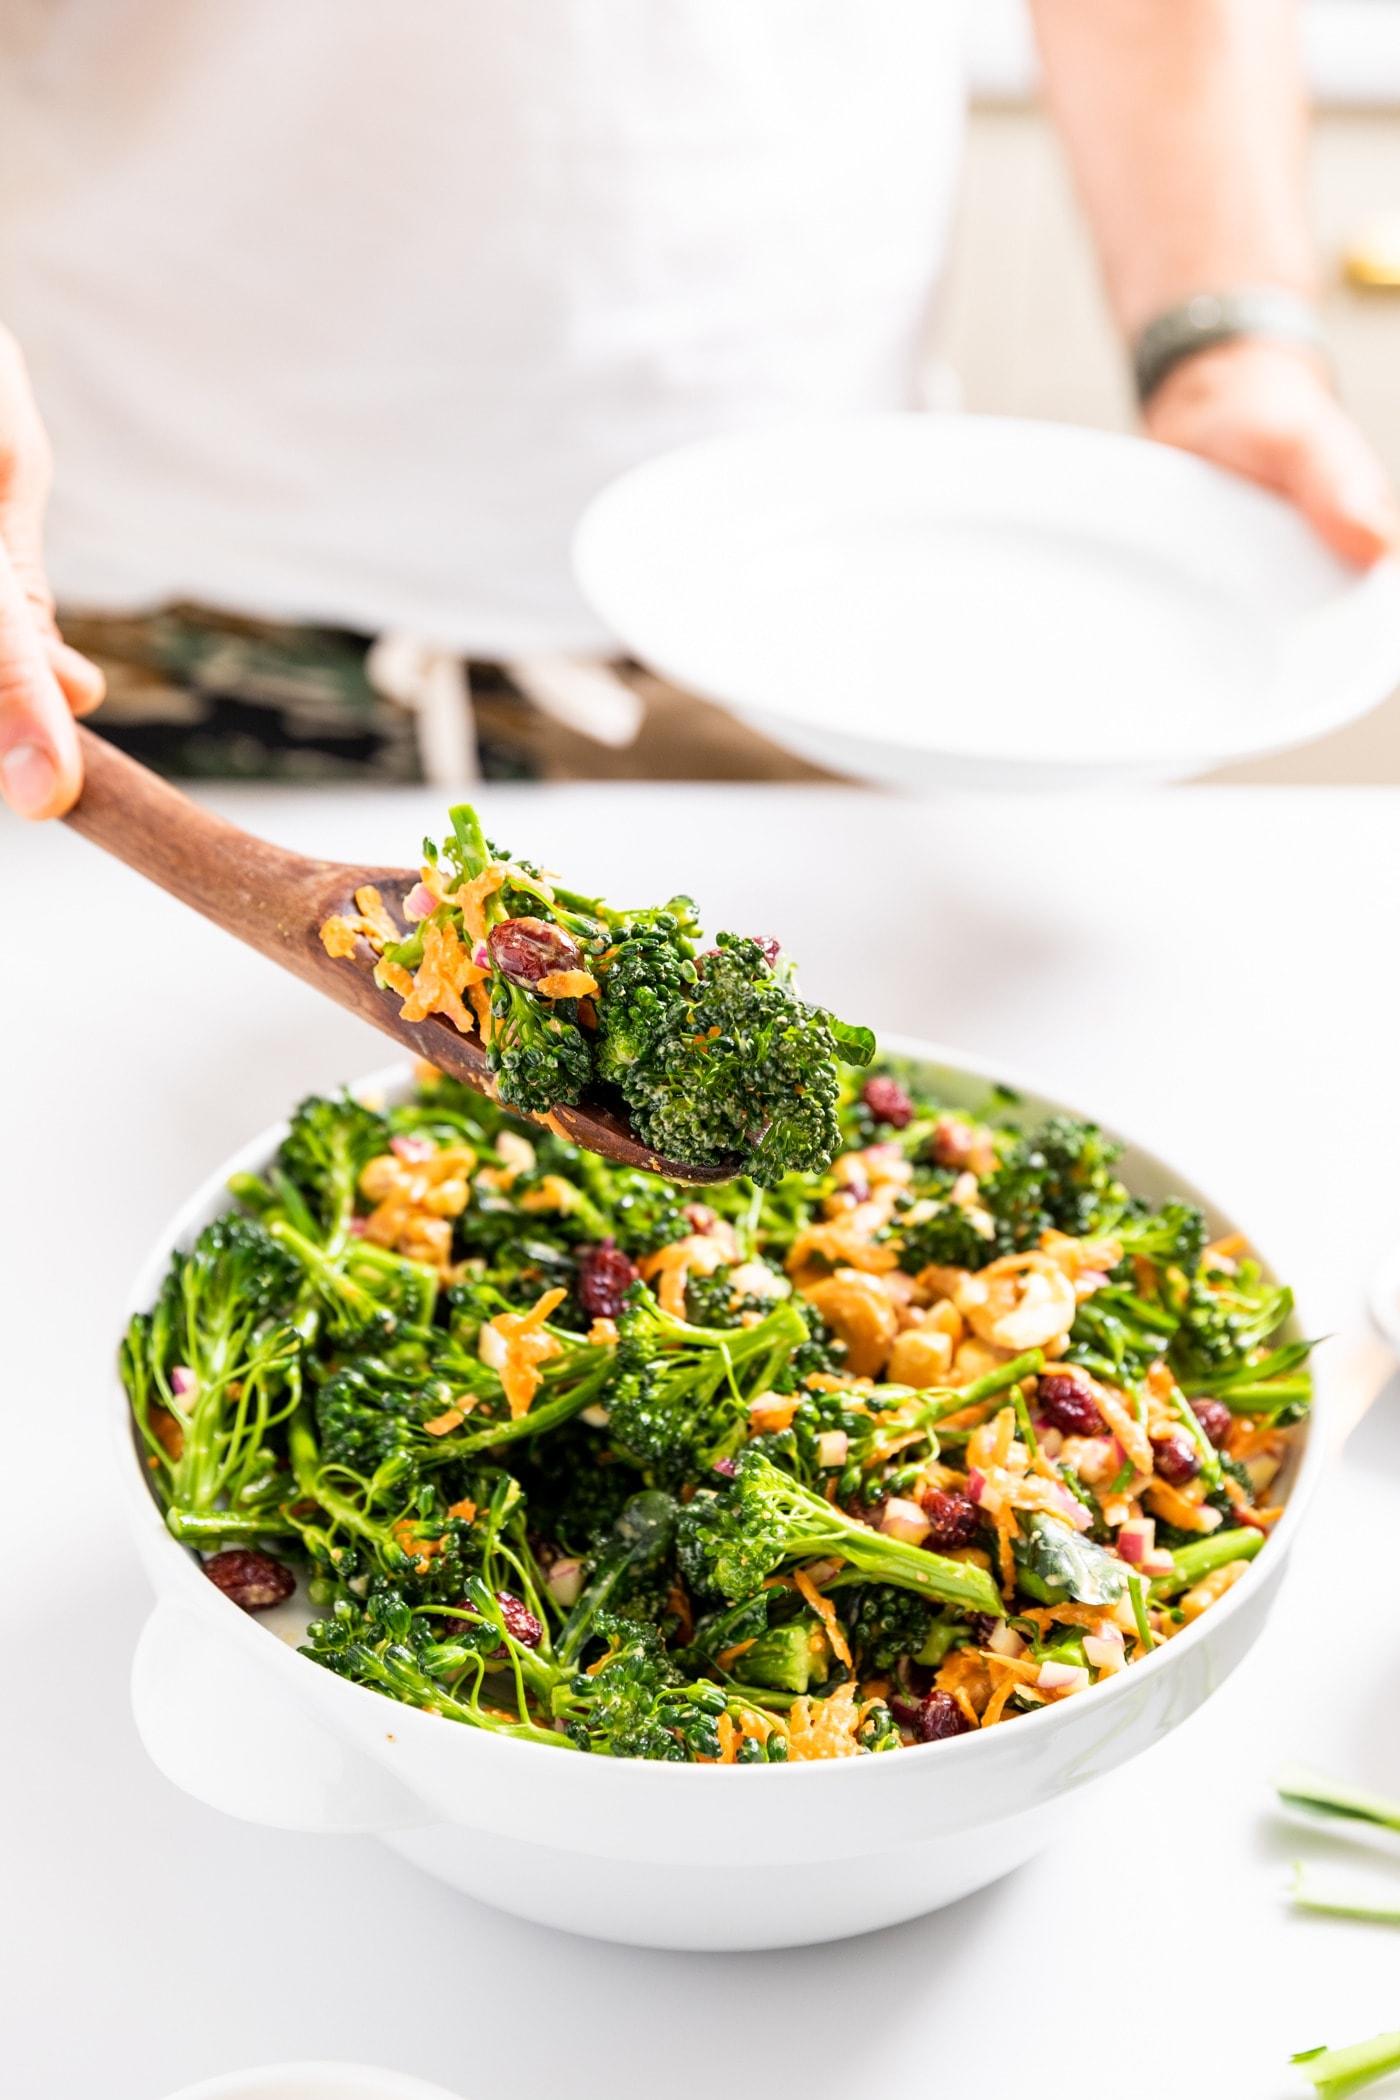 White bowl filled with broccoli florets topped with sauce and cashews and dried cranberries with hand holding wooden serving spoon